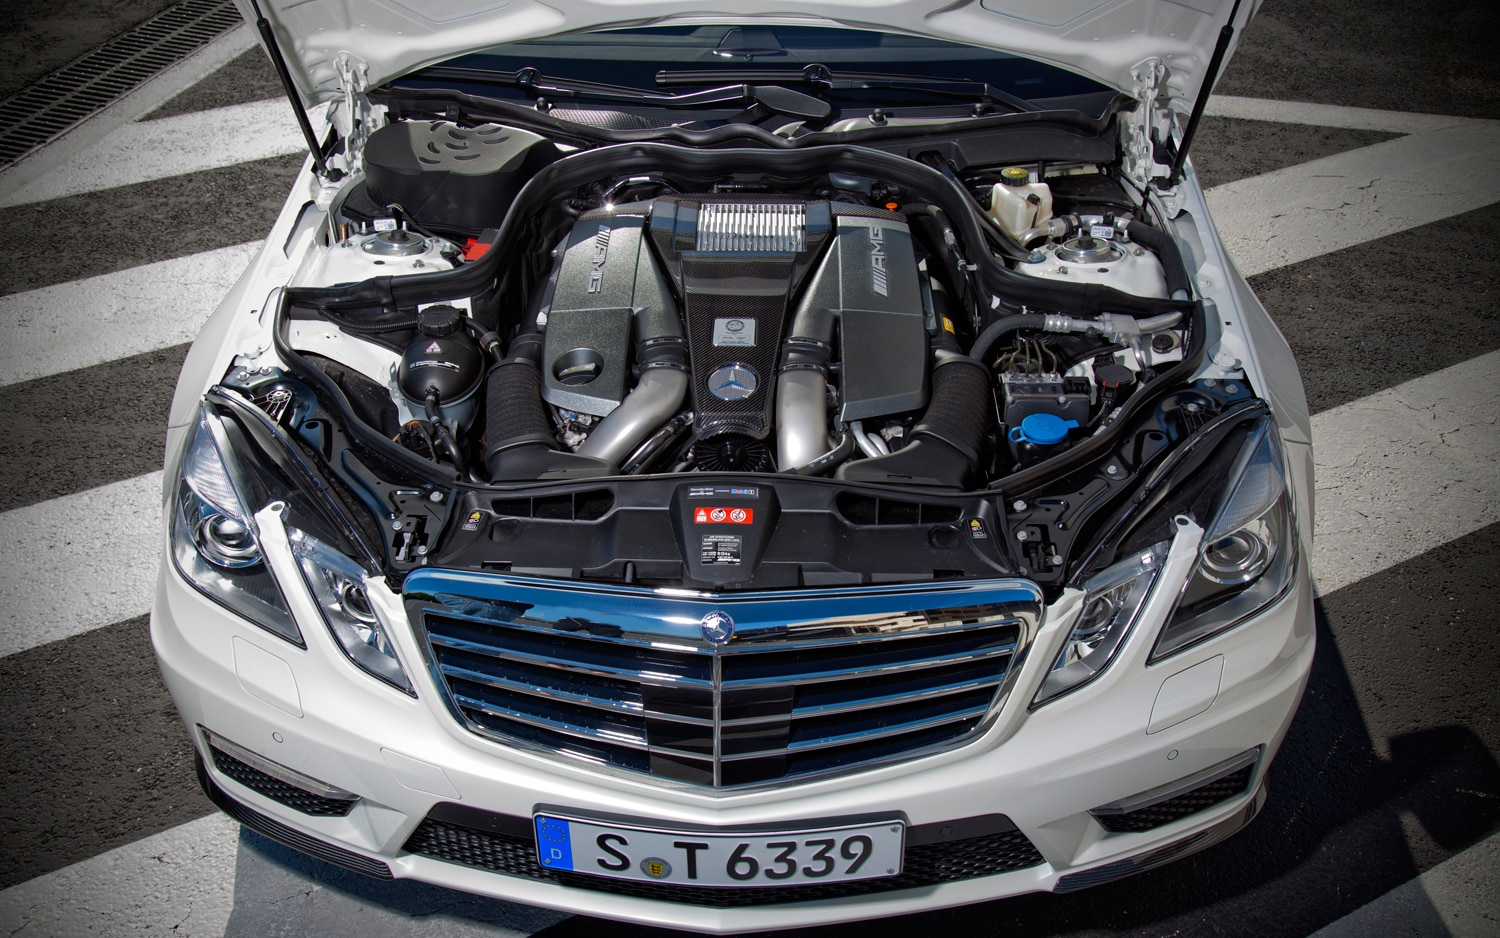 2012 Mercedes-Benz E350 BlueTEC - Editors' Notebook